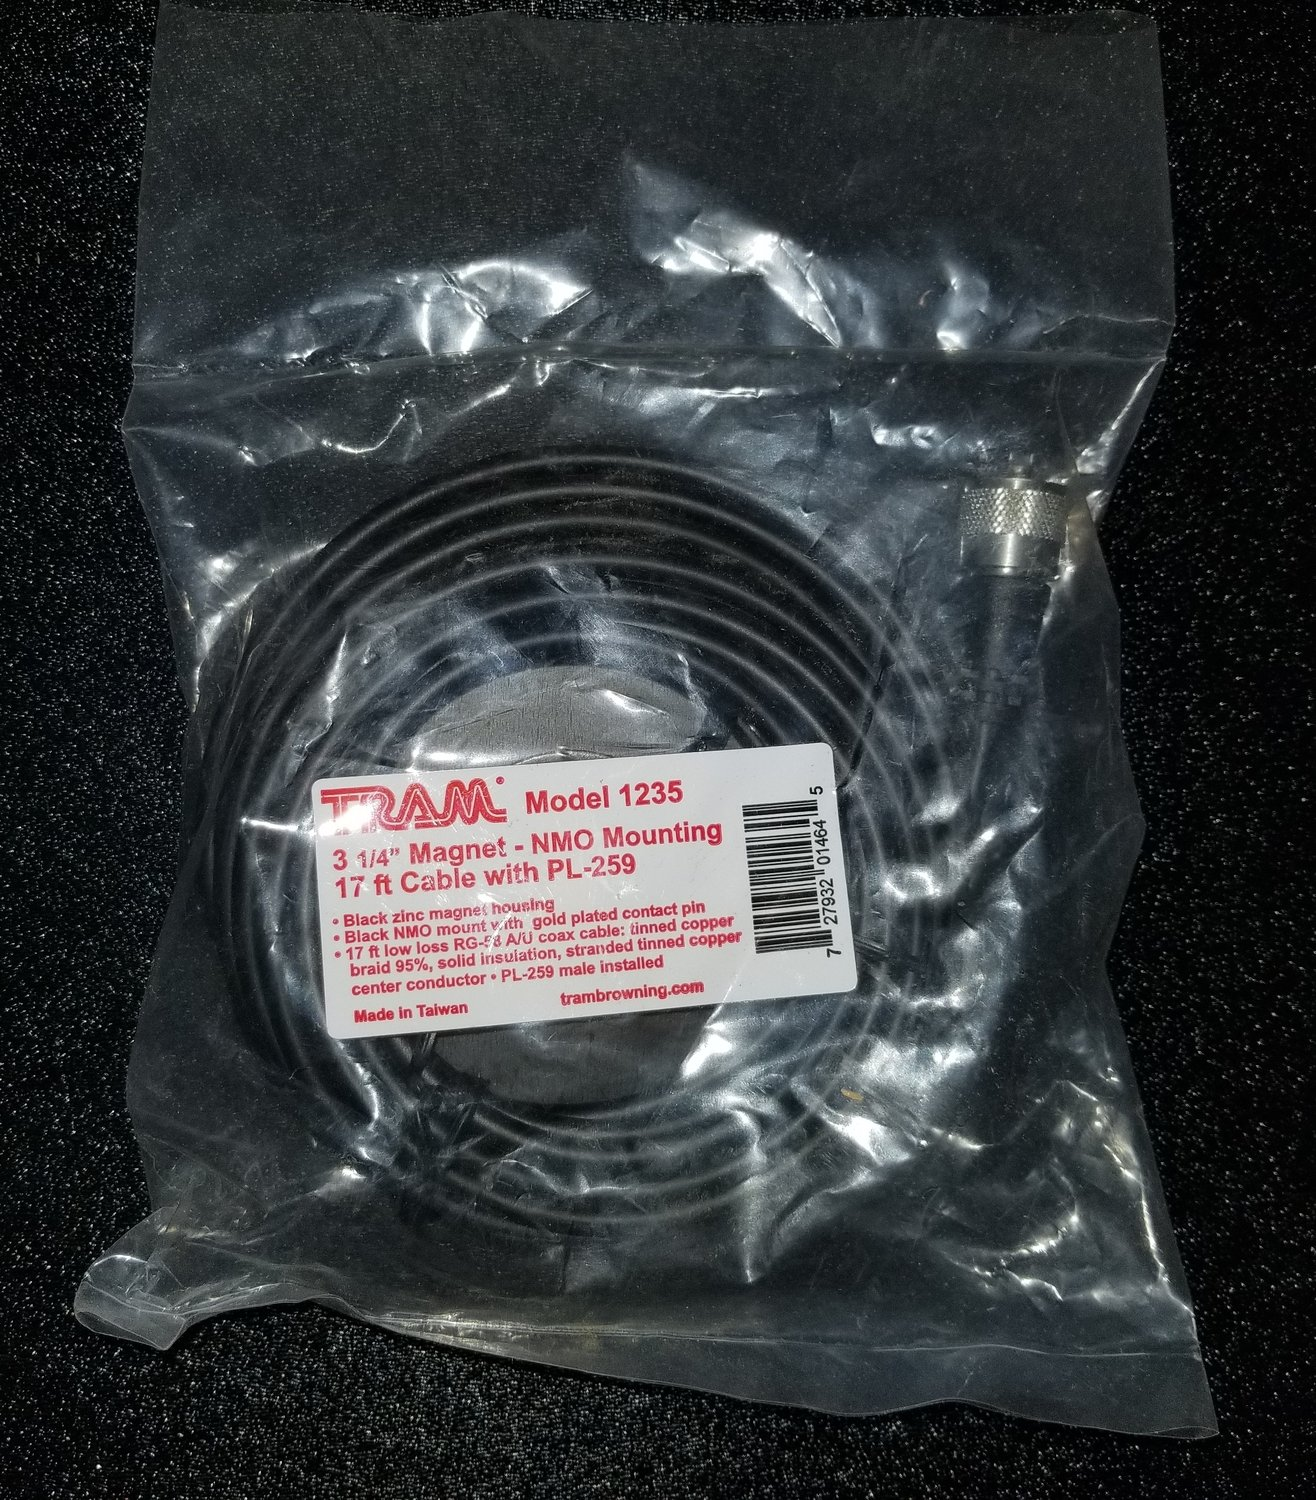 3 1/4 Magnet NMO Mount 17' Cable w/ PL-259